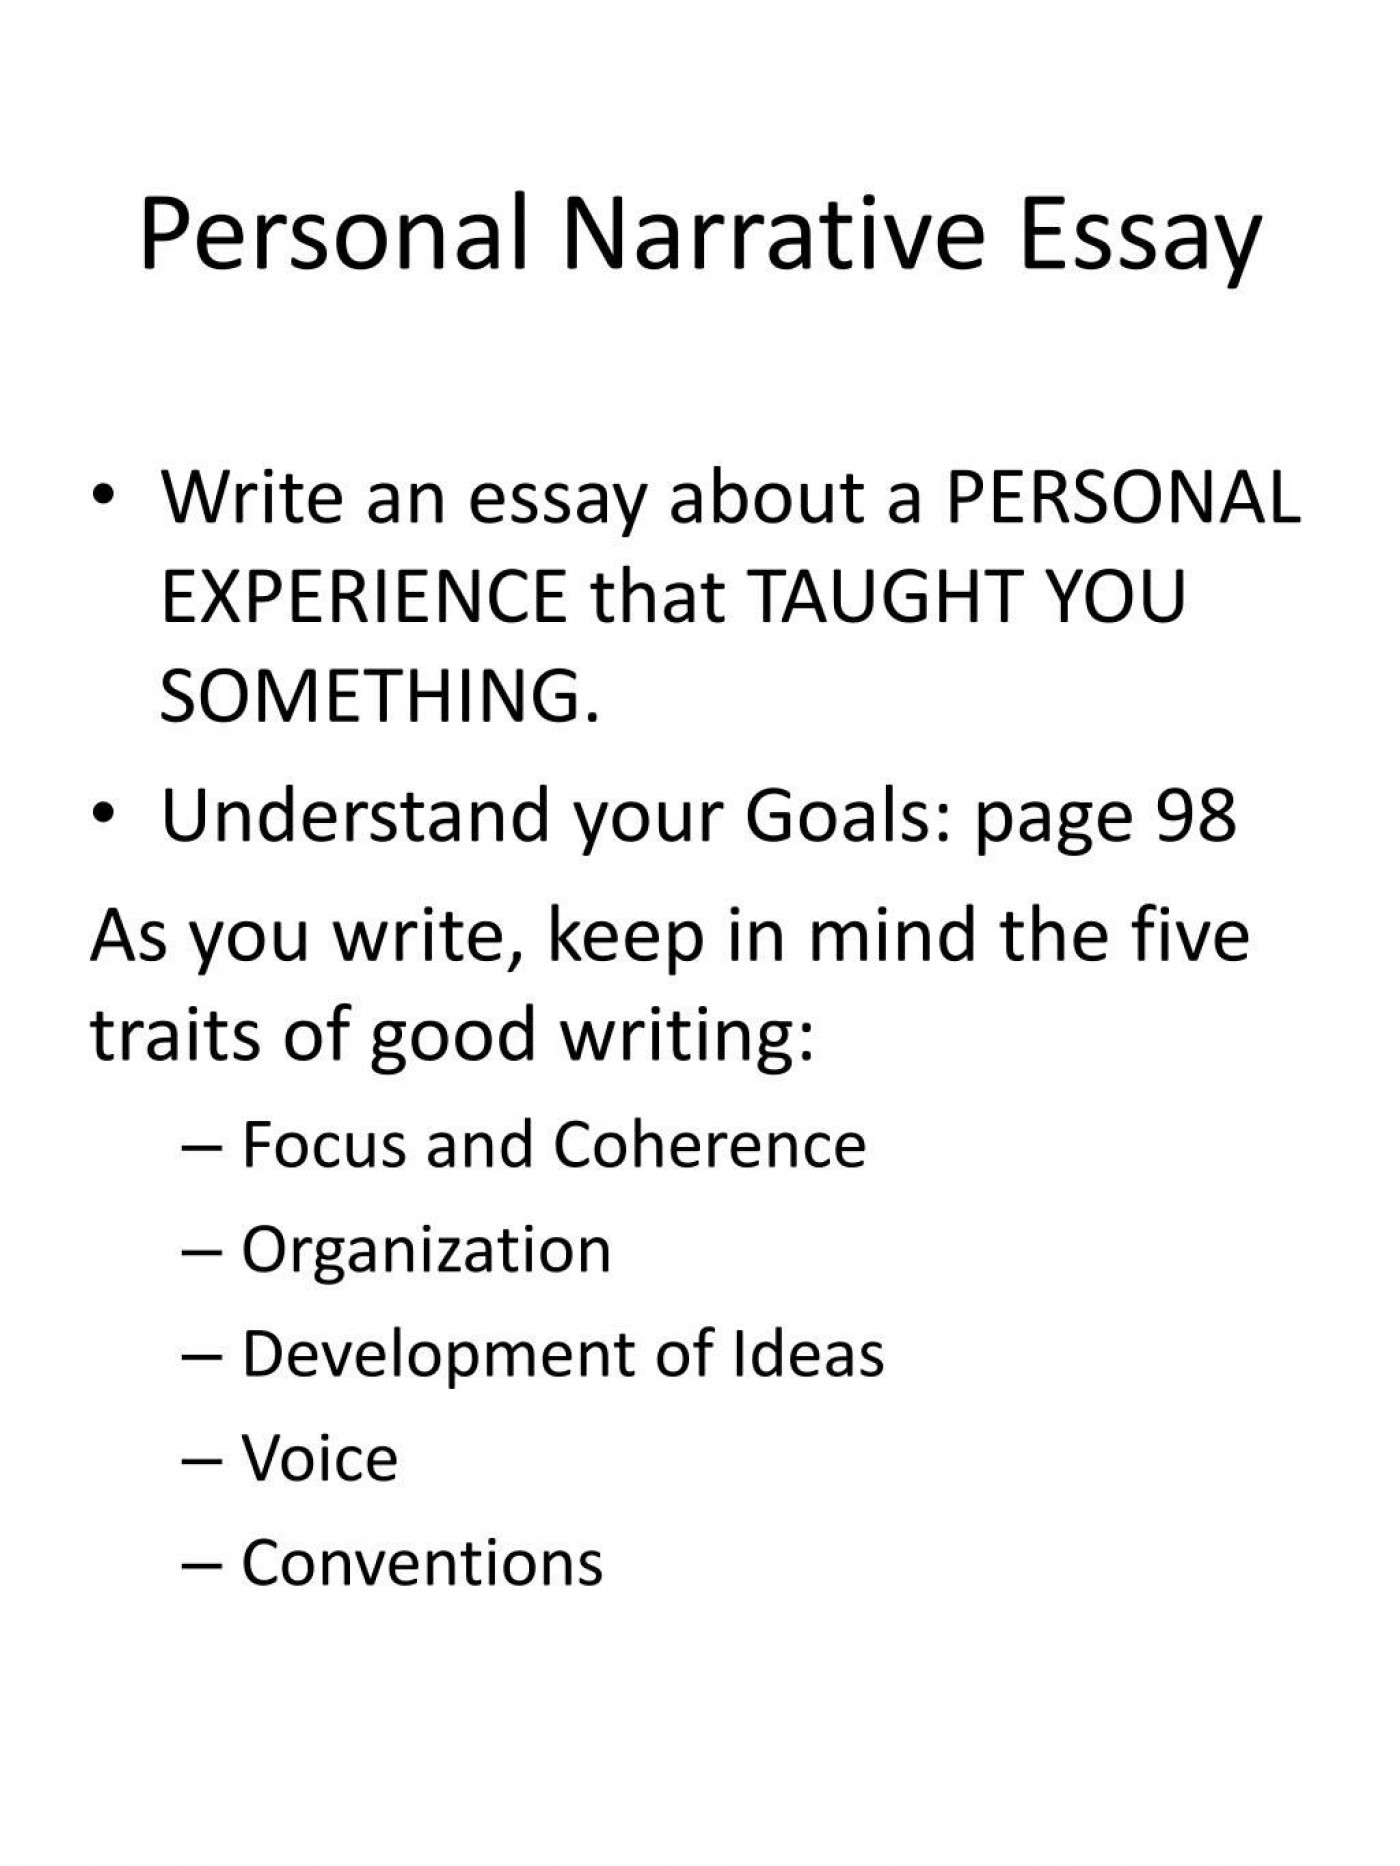 008 Striking Personal Narrative Essay High Resolution  Structure Sample School Prompt1400